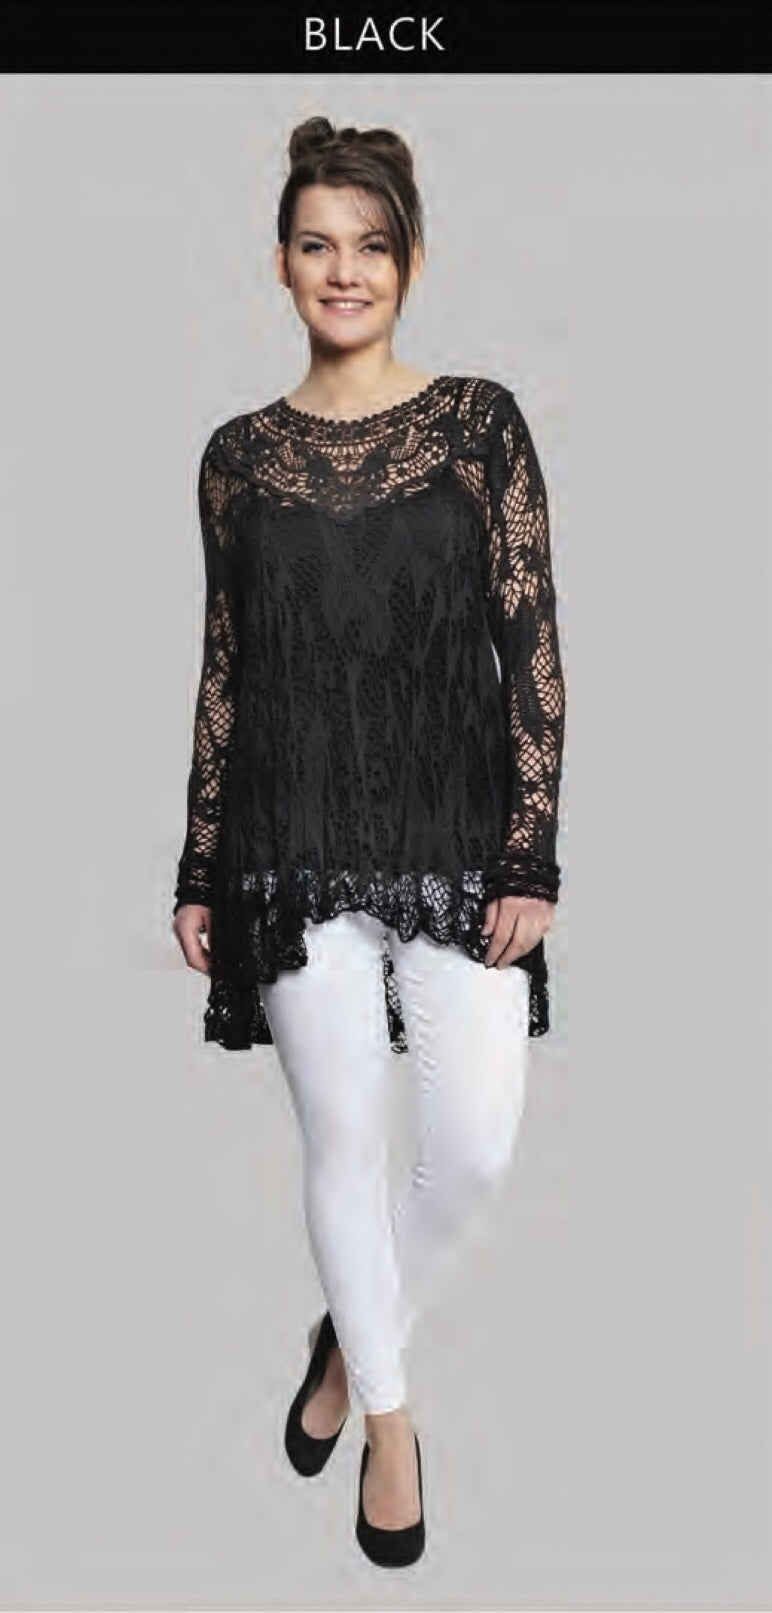 Floral Detail Crochet Long Sleeve Top Deserve Sterling Jewelry And